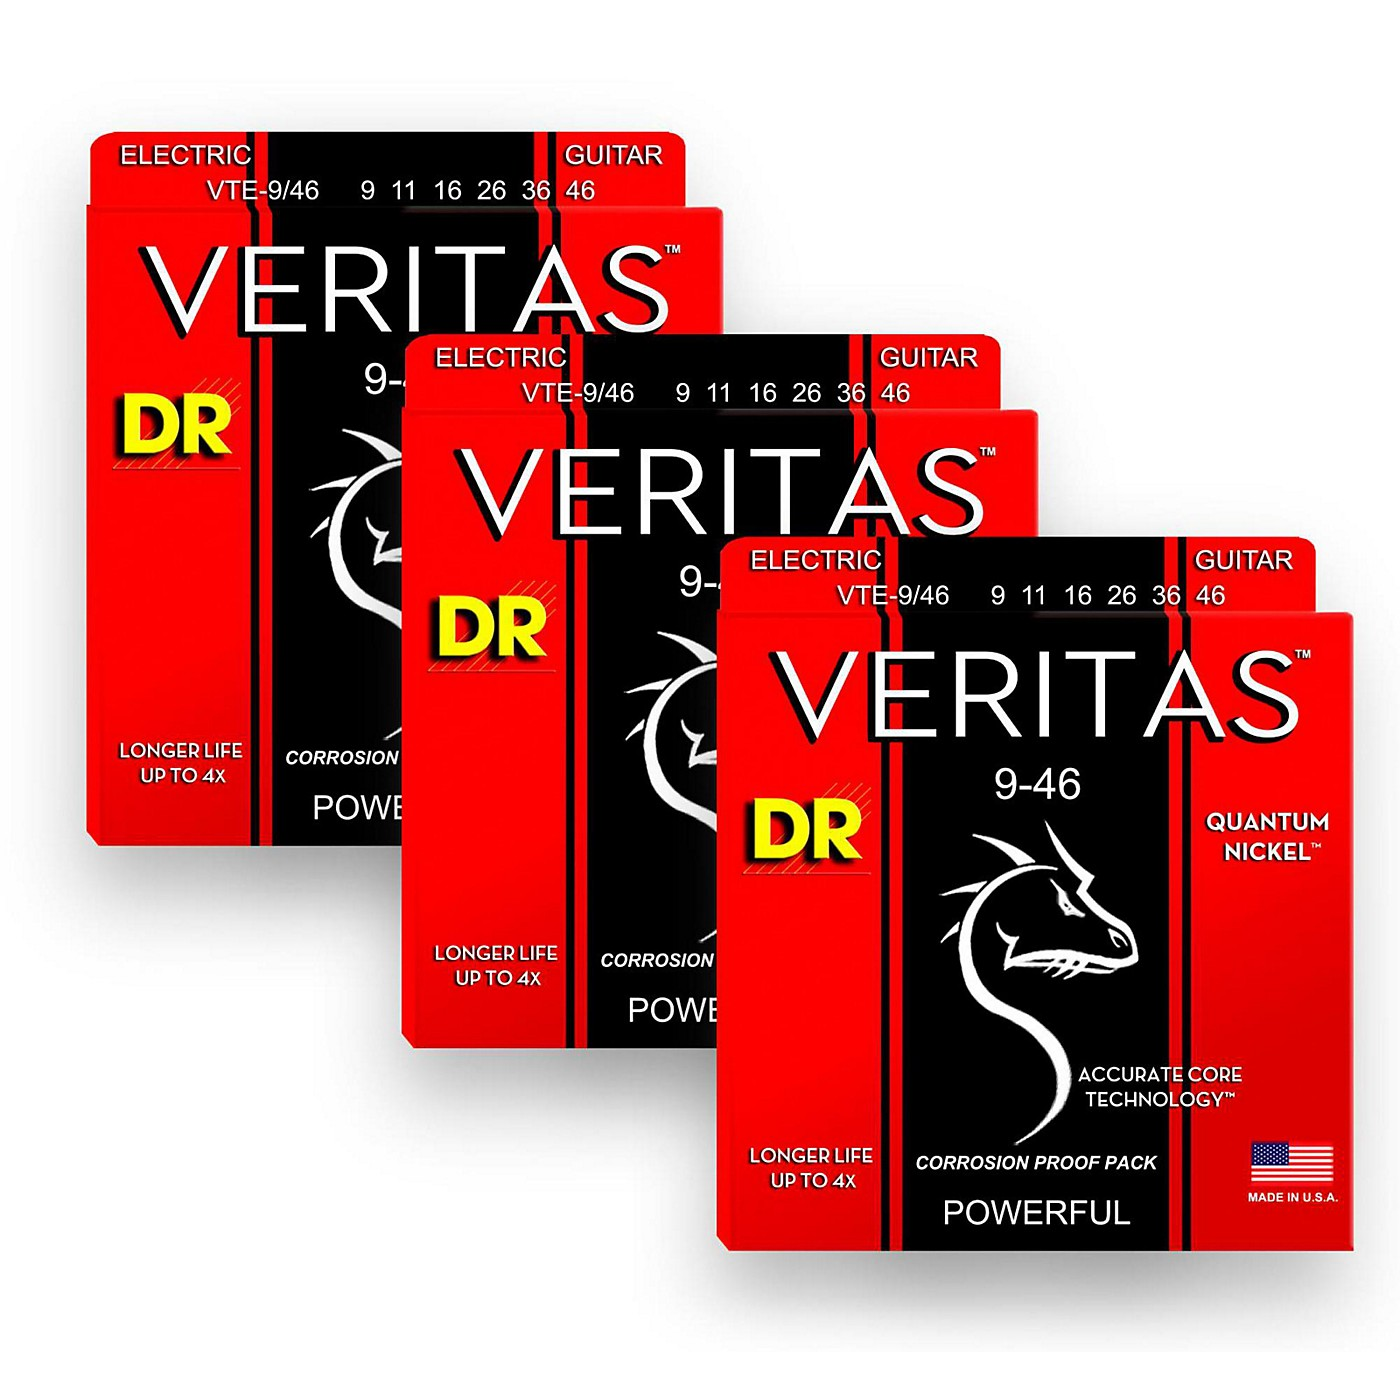 DR Strings Veritas - Accurate Core Technology Light and Heavy Electric Guitar Strings (9-46) 3-PACK thumbnail